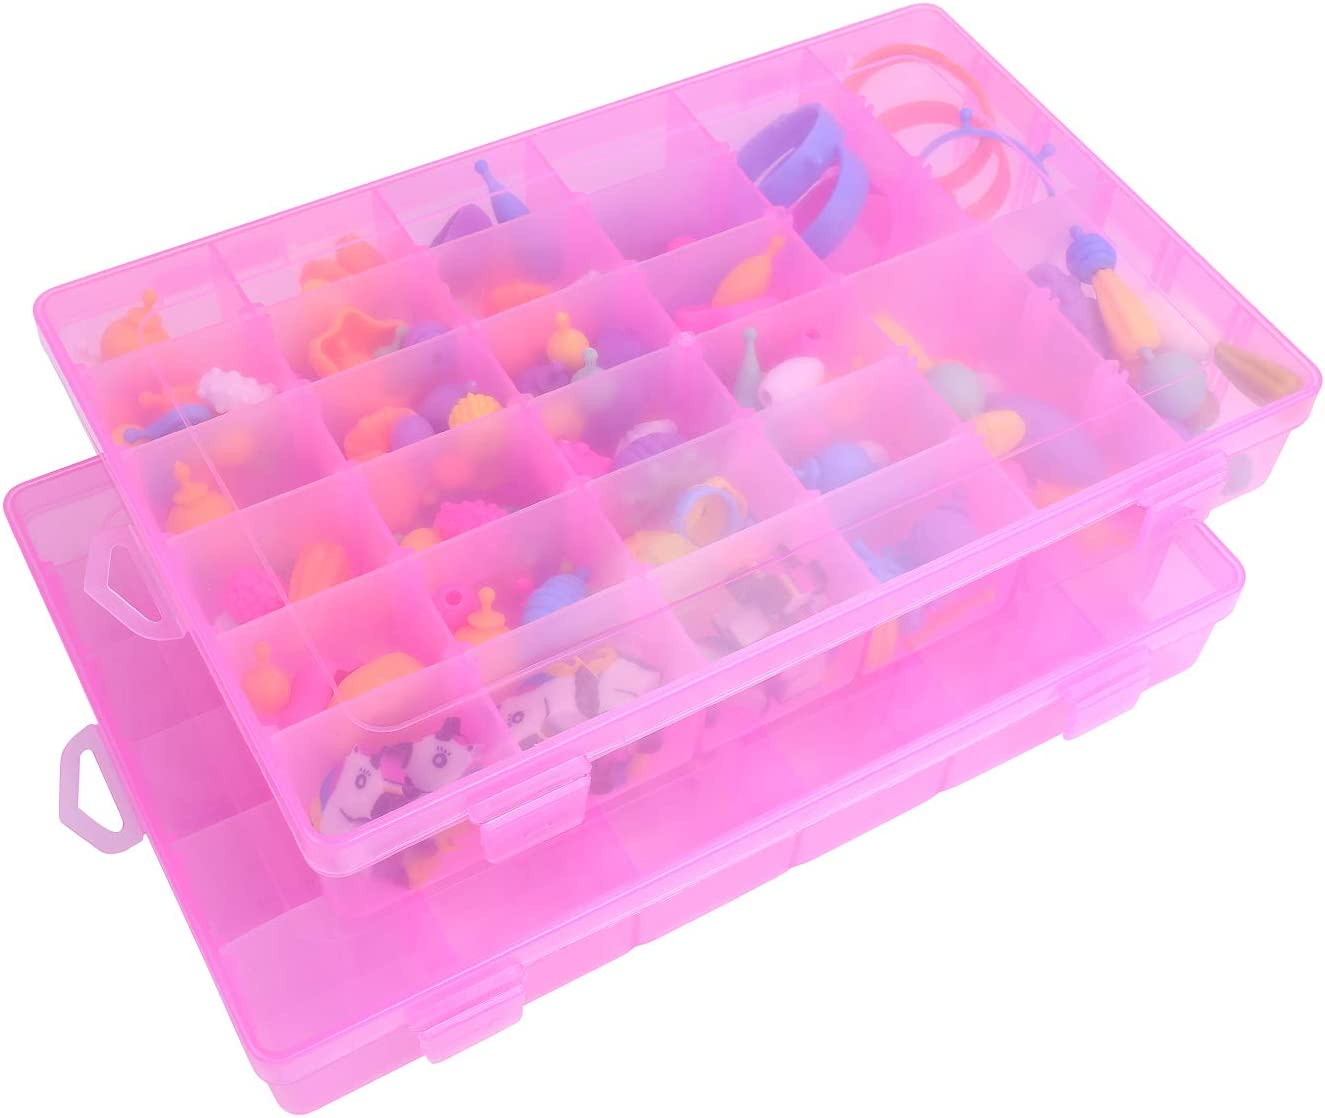 OffKits 2PCS Jewelry Box Plastic Bead Storage Container Earrings